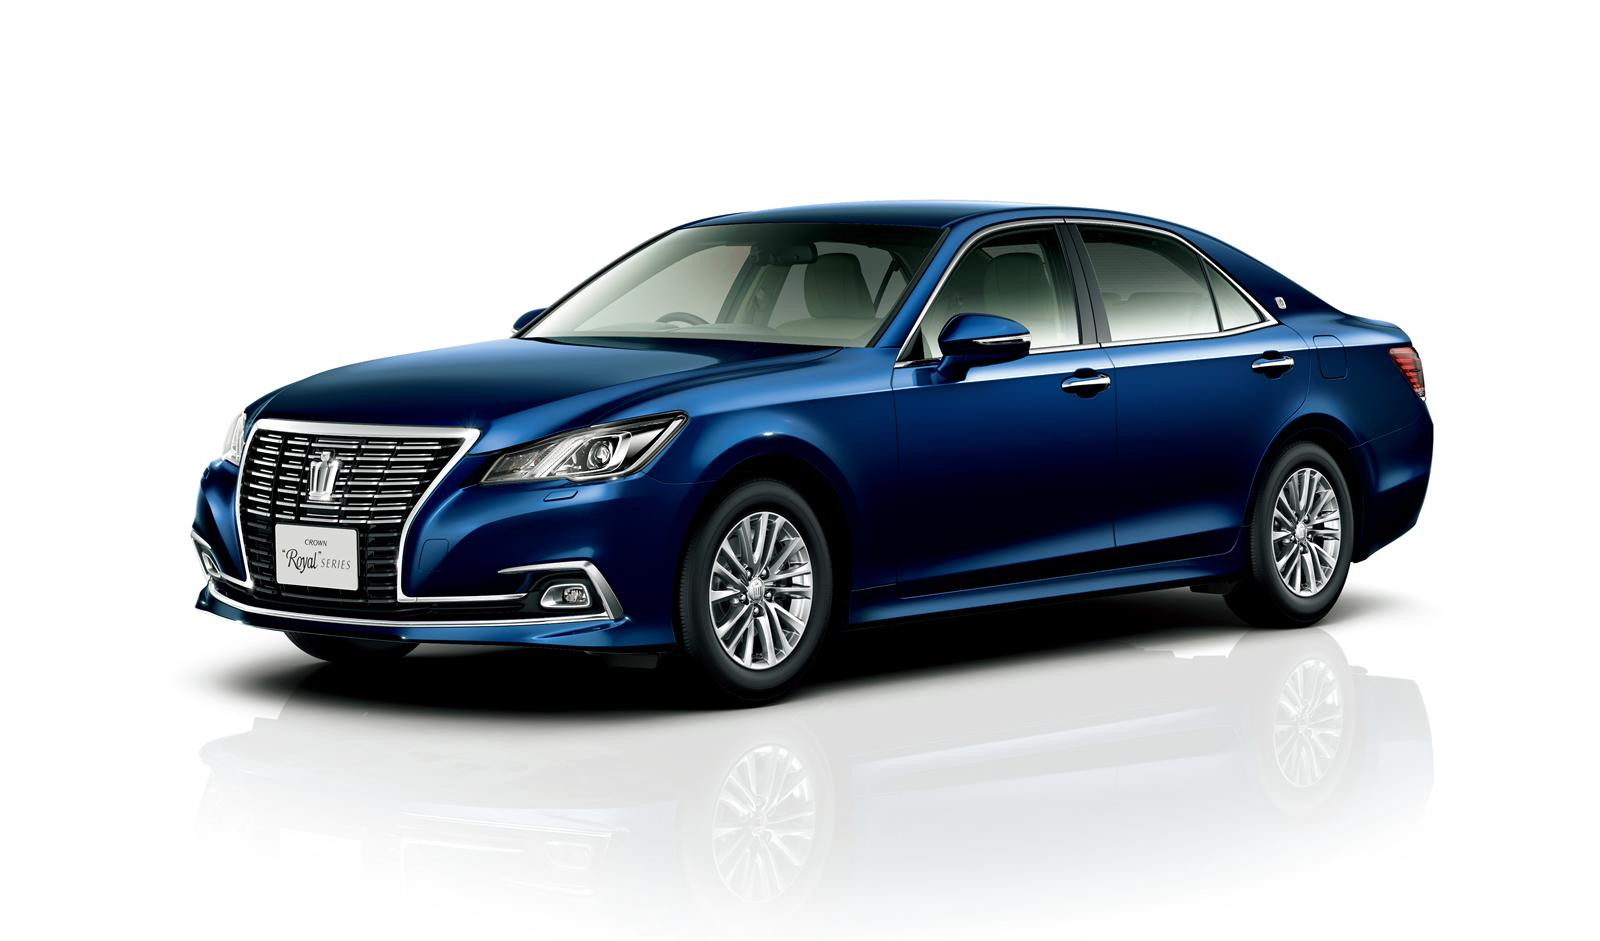 2015 Toyota Avalon For Sale >> 2014 Toyota Crown Athlete Is a Cool Sedan You Can't Have - autoevolution